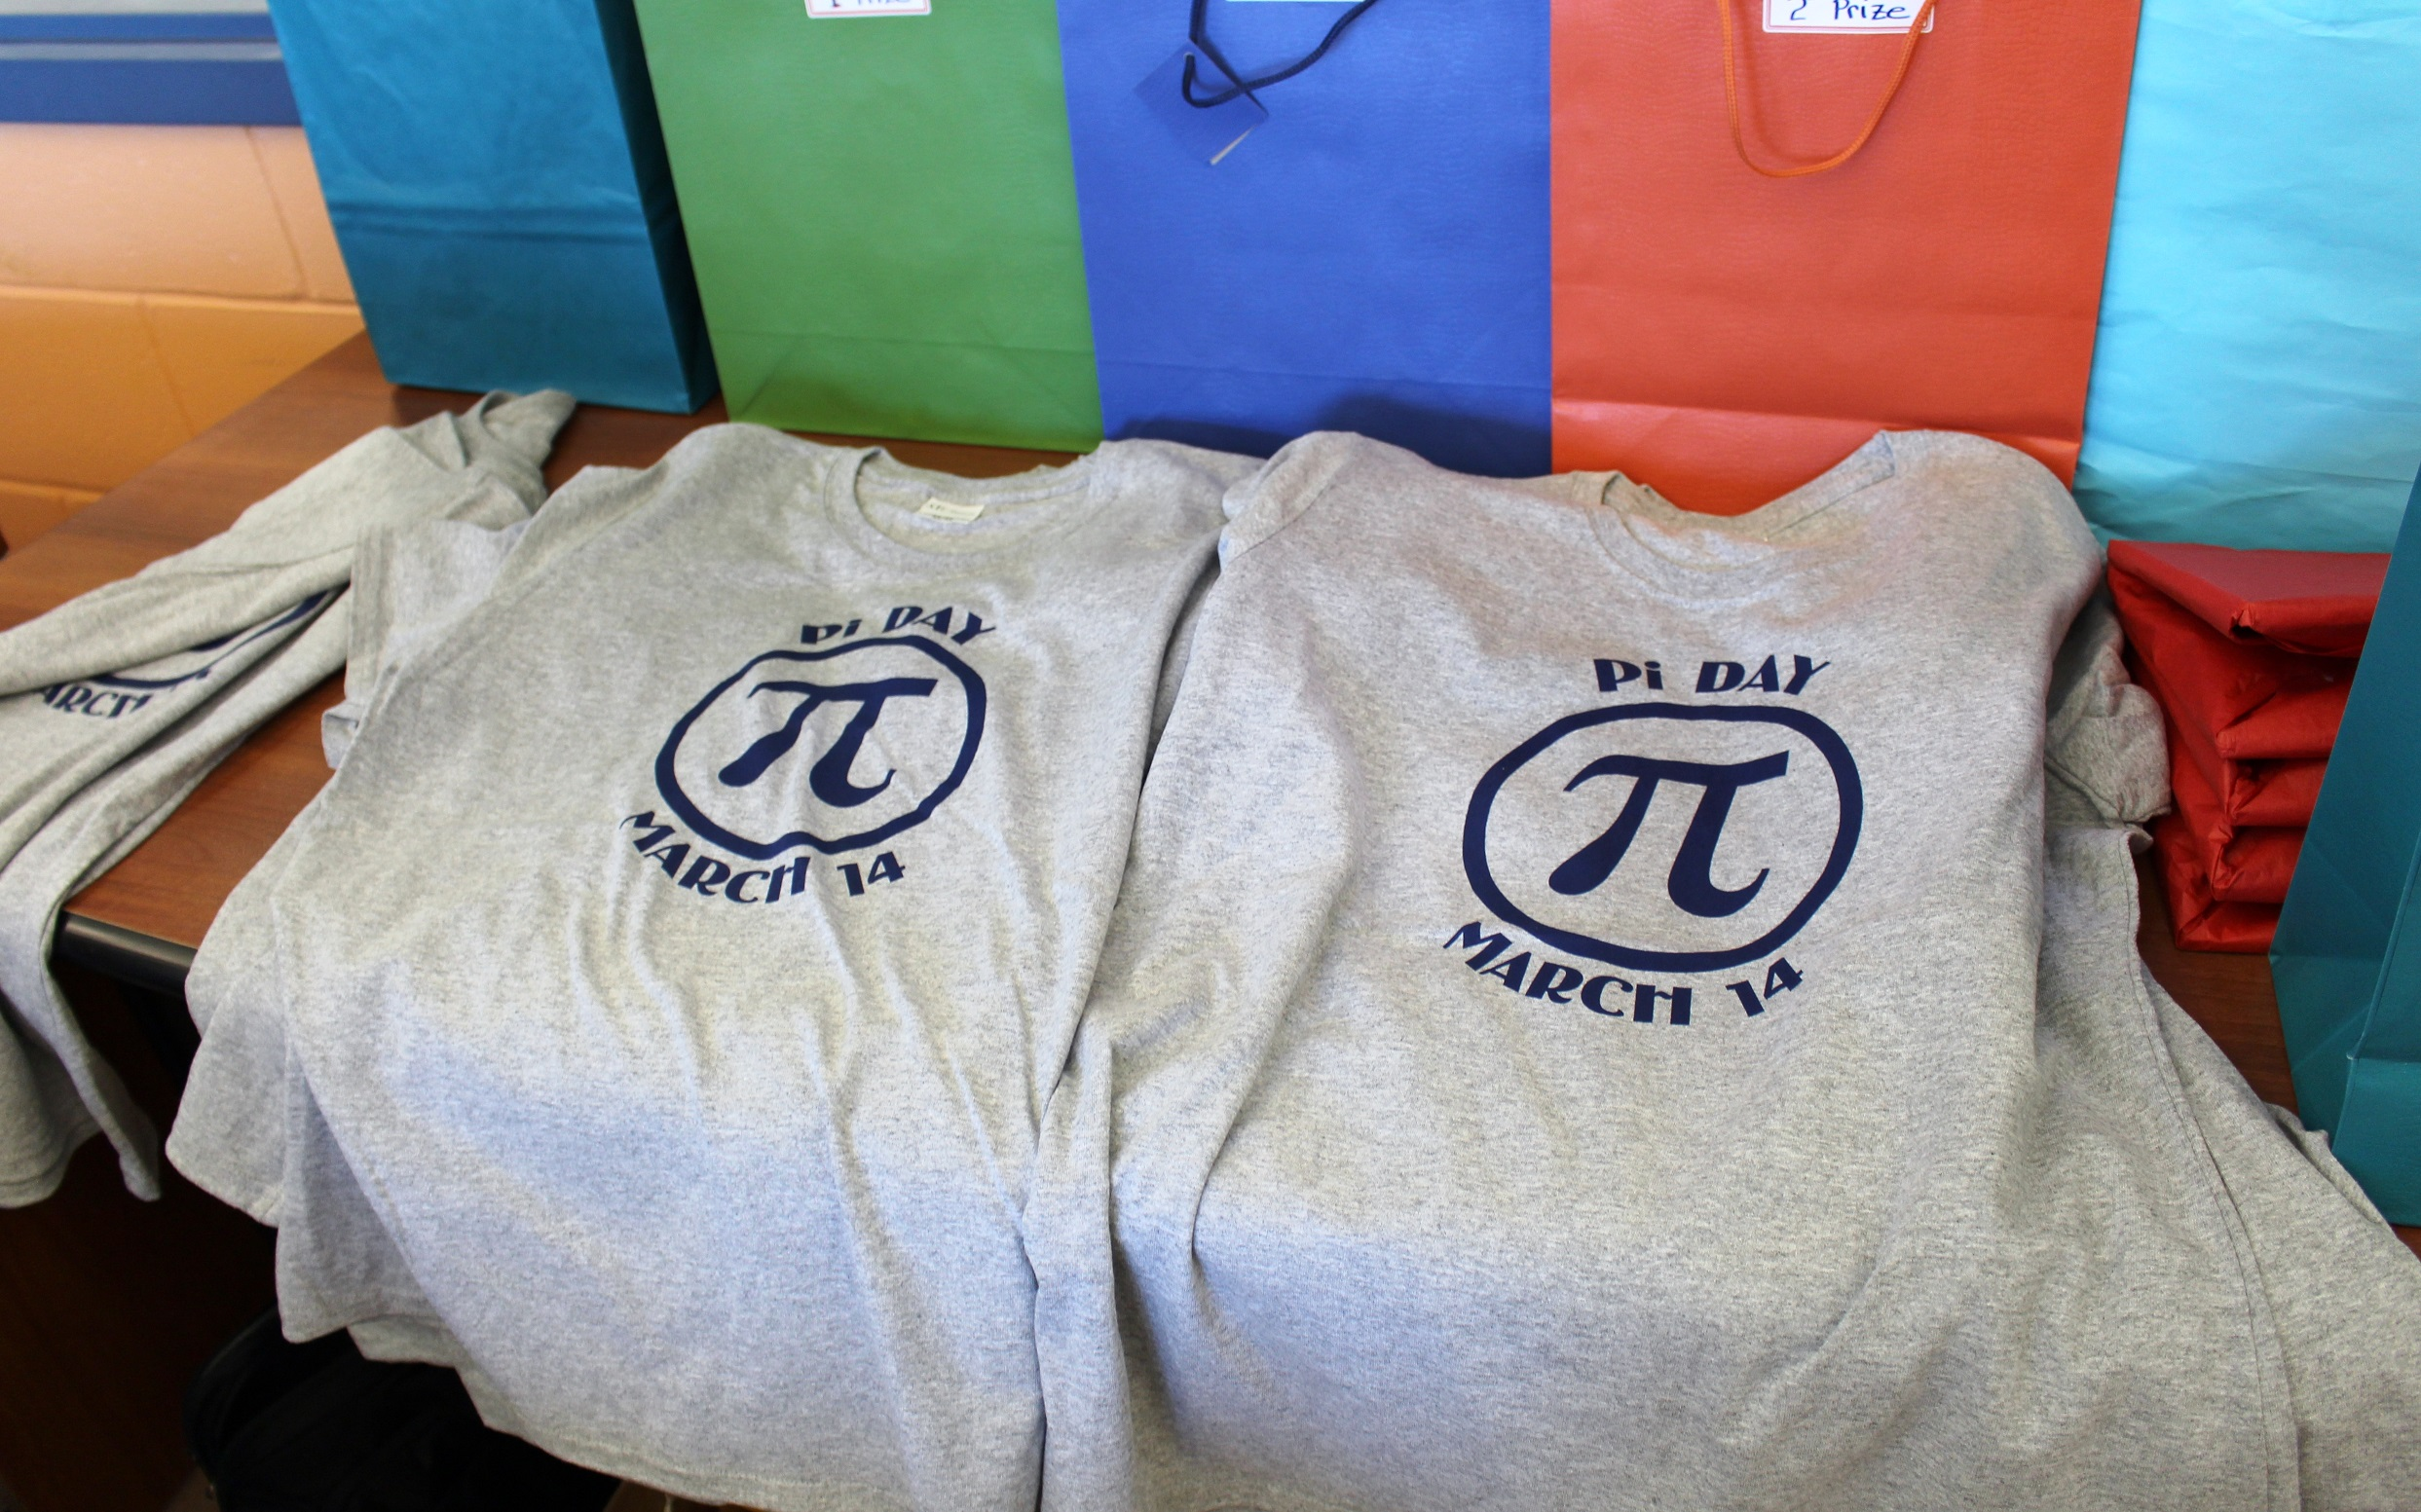 Pi Day at Northern College with OACETT Timmins!